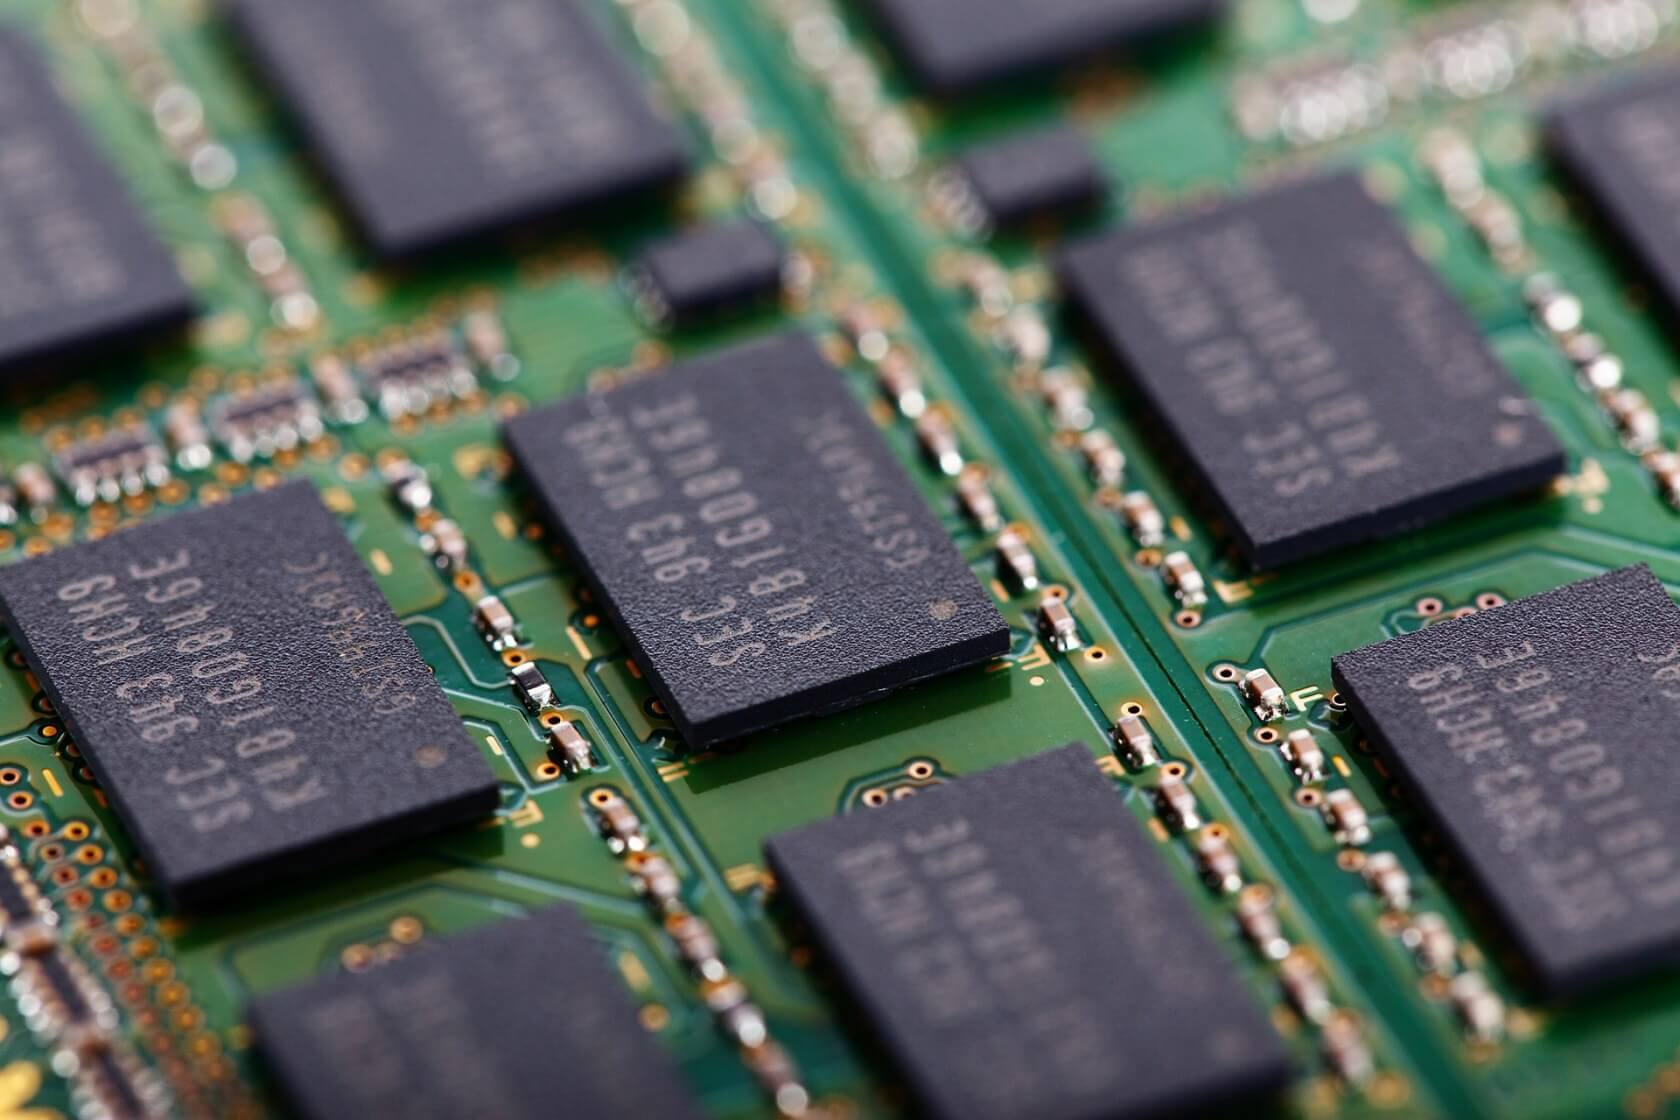 Analysts say we are headed for a flash memory price crash